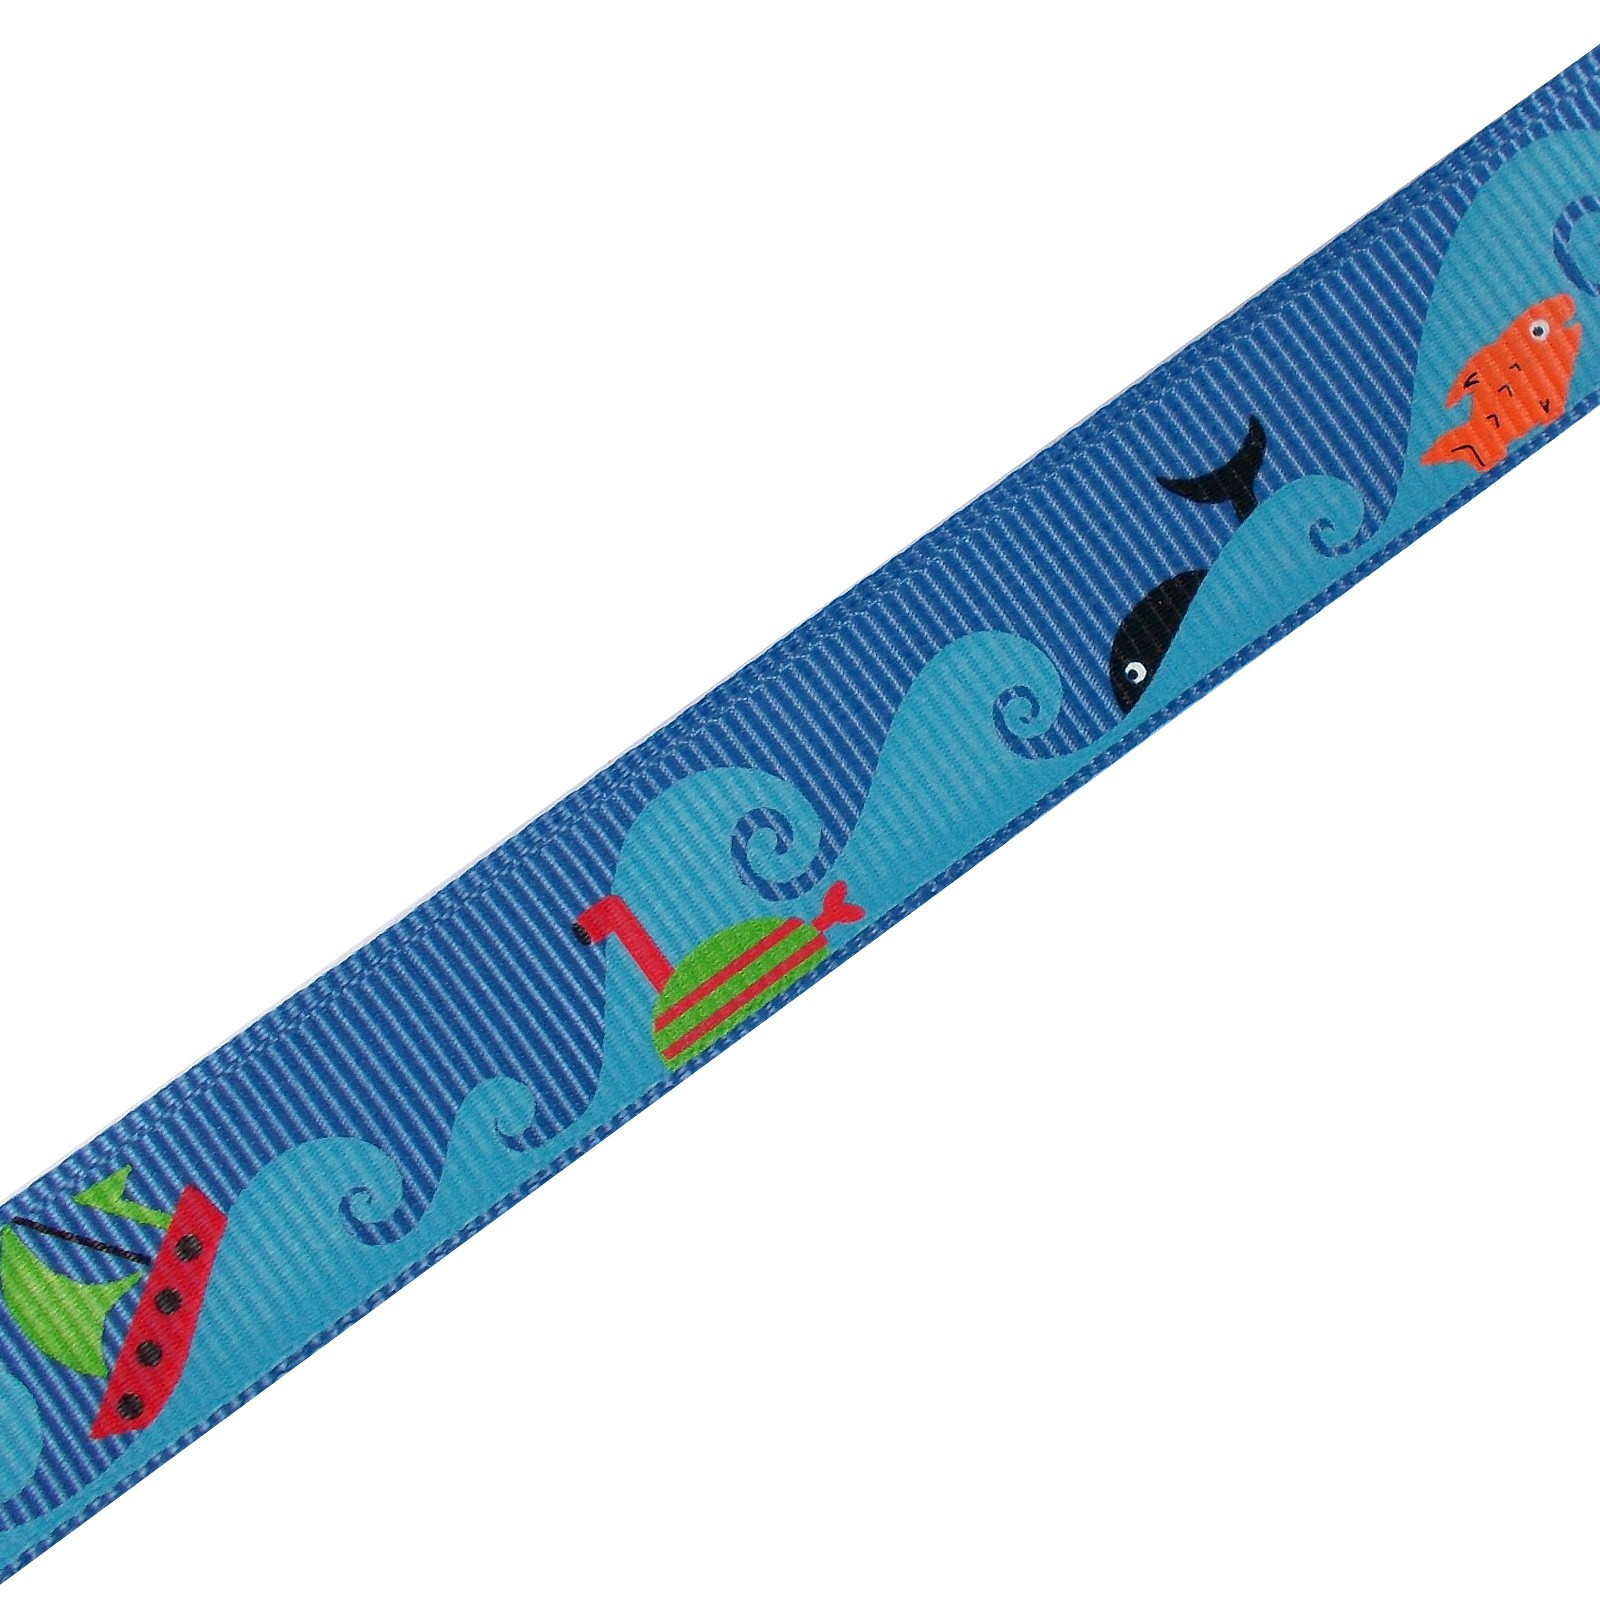 Adventure Childrens Ribbon 16mm Wide Blue Boats and Fish 1 metre length